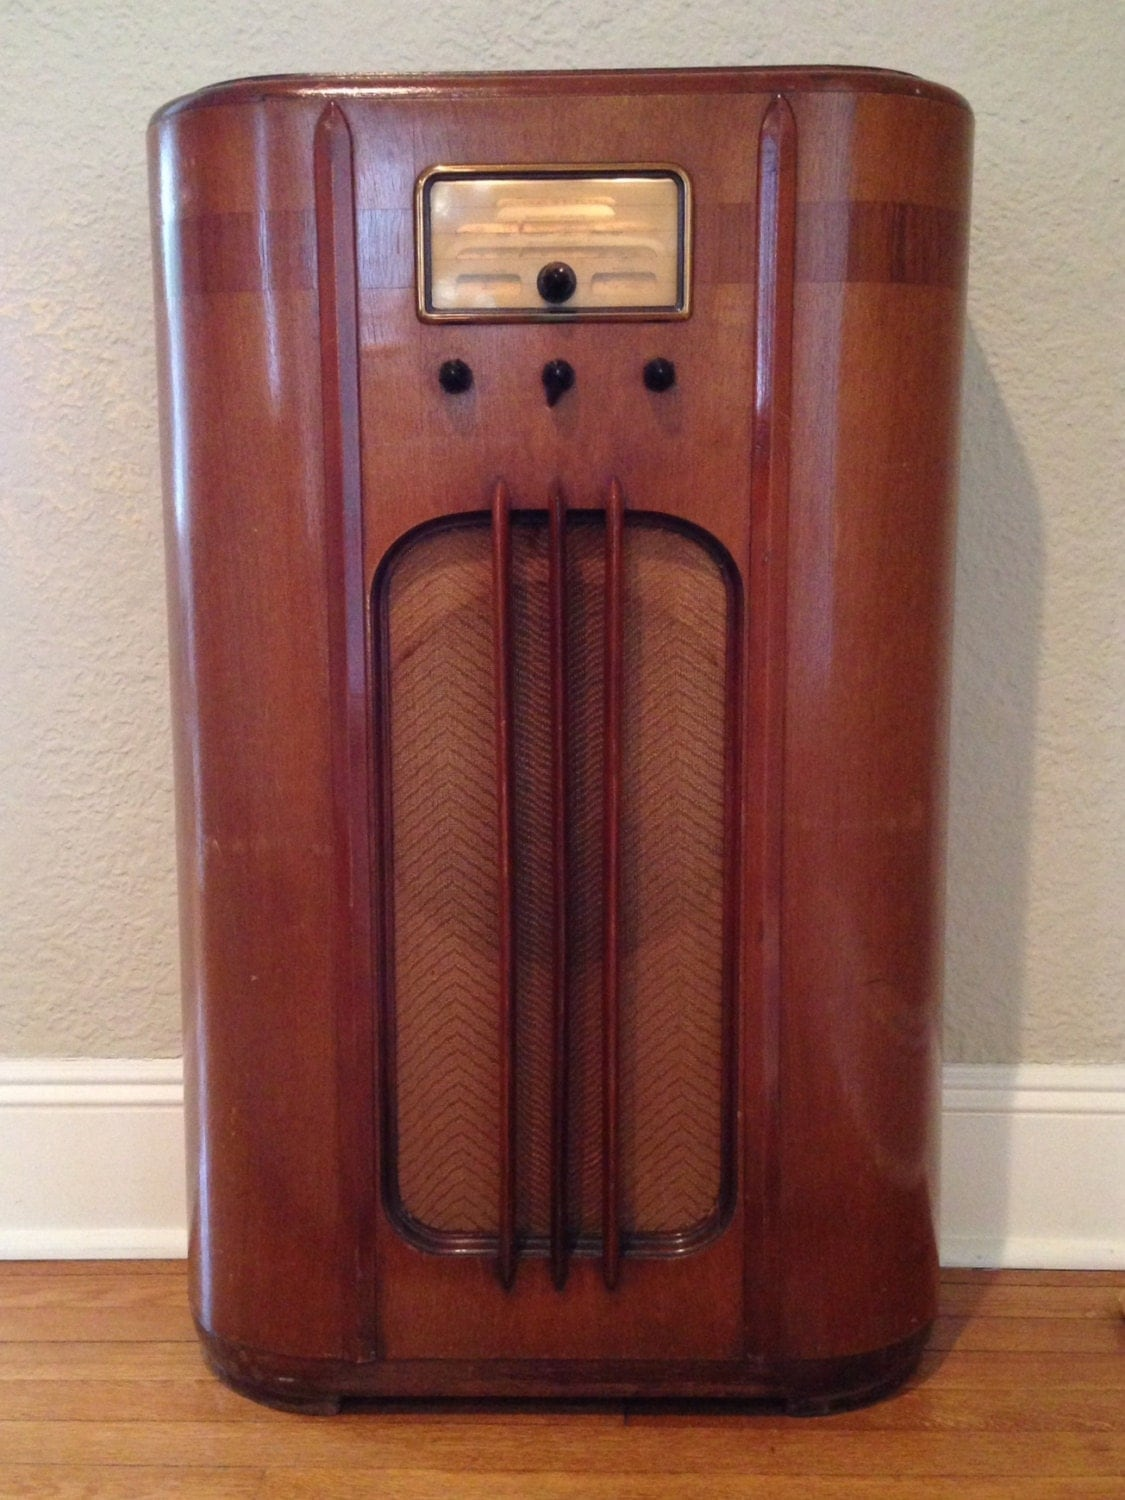 1937 Console Radio Model F 65 General Electric By